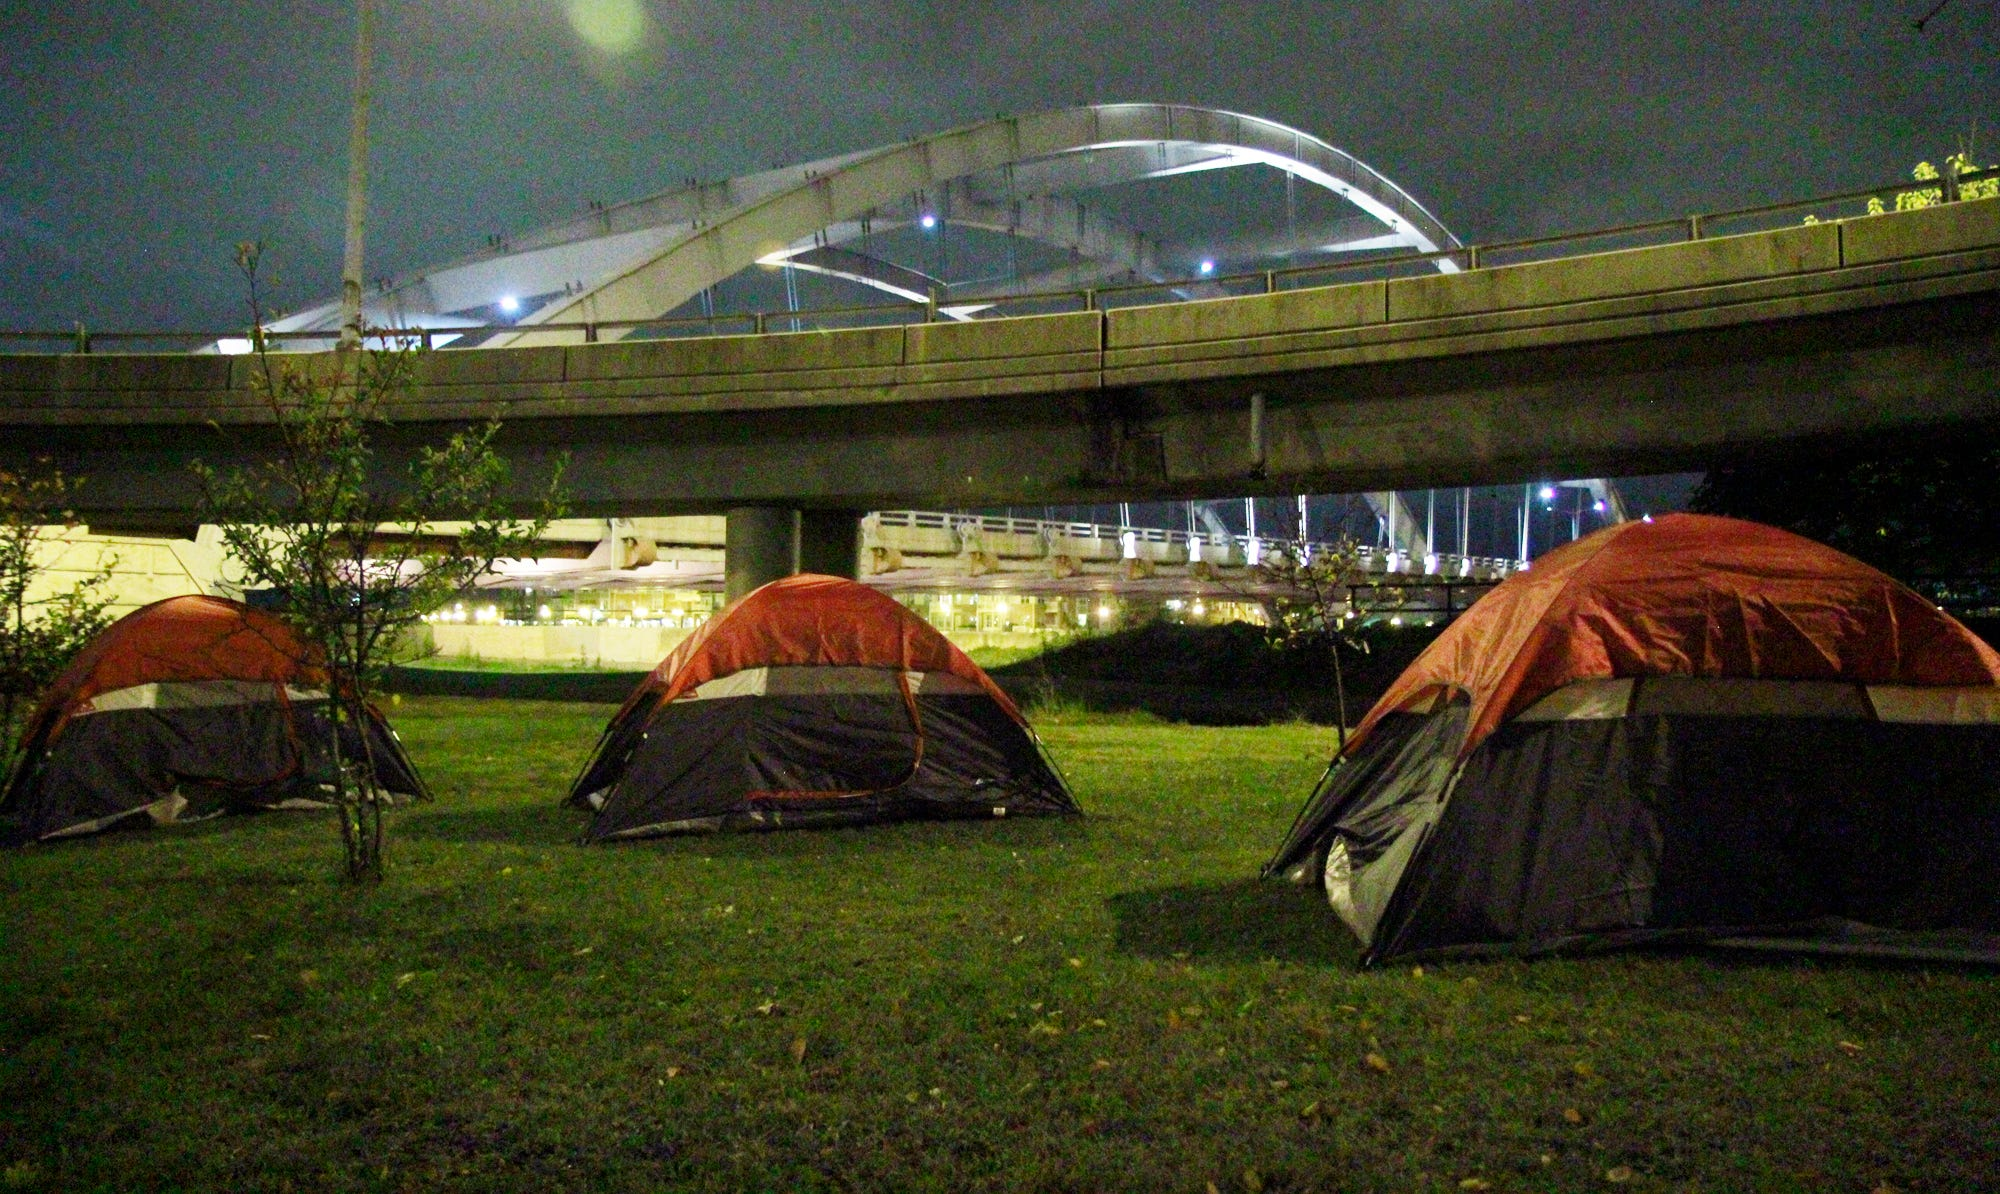 NU 102214 tent sanctuary metro A.jpg & Homeless tent sanctuary finds a new home